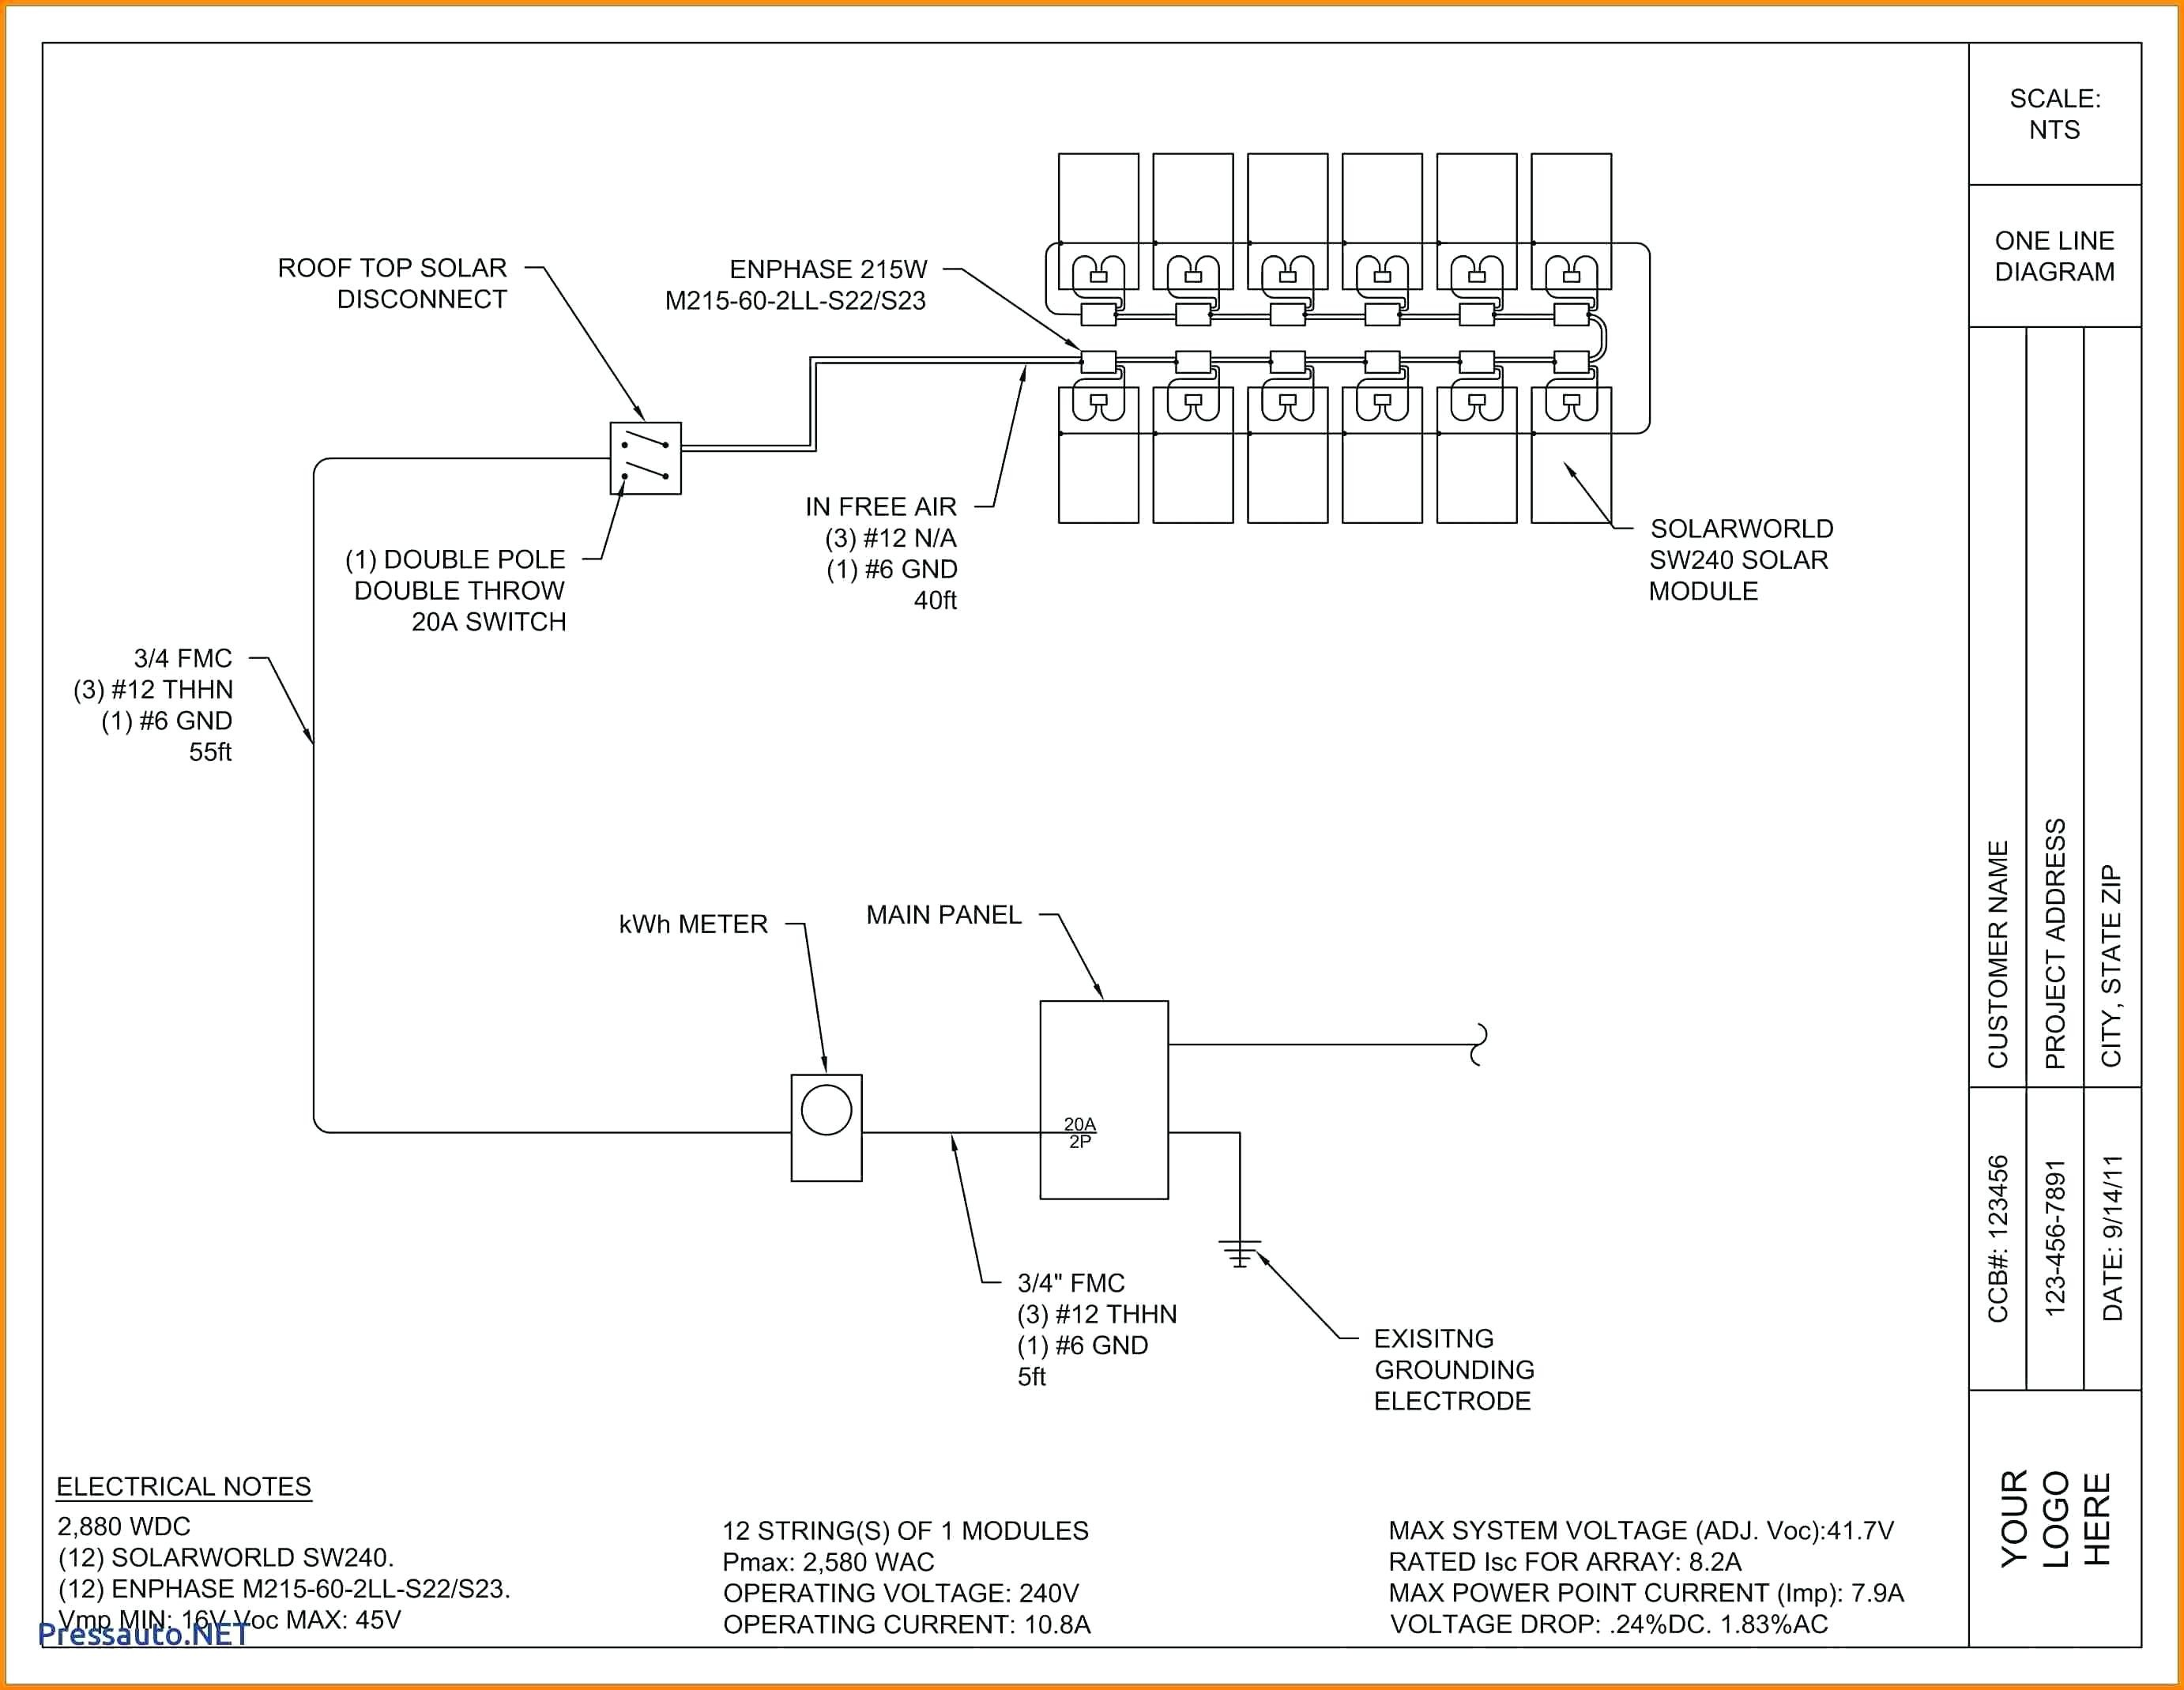 Double Pole thermostat Wiring Diagram Double Pole thermostat Wiring Diagram 4 Wire Awesome Contemporary Of Double Pole thermostat Wiring Diagram